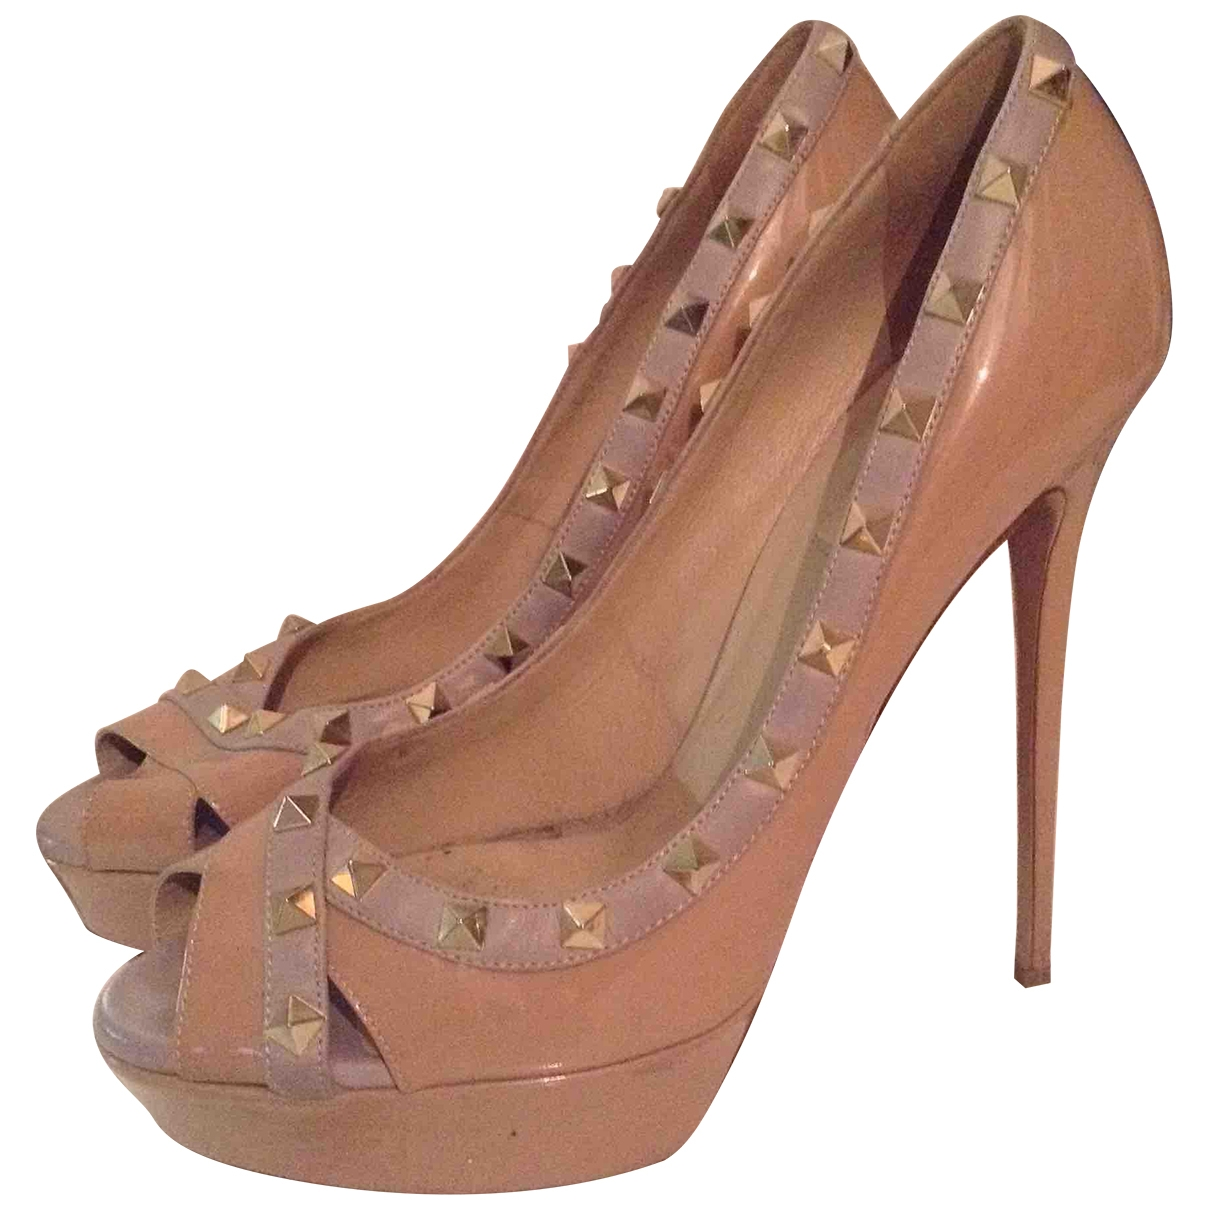 Valentino Garavani \N Beige Patent leather Heels for Women 41 EU